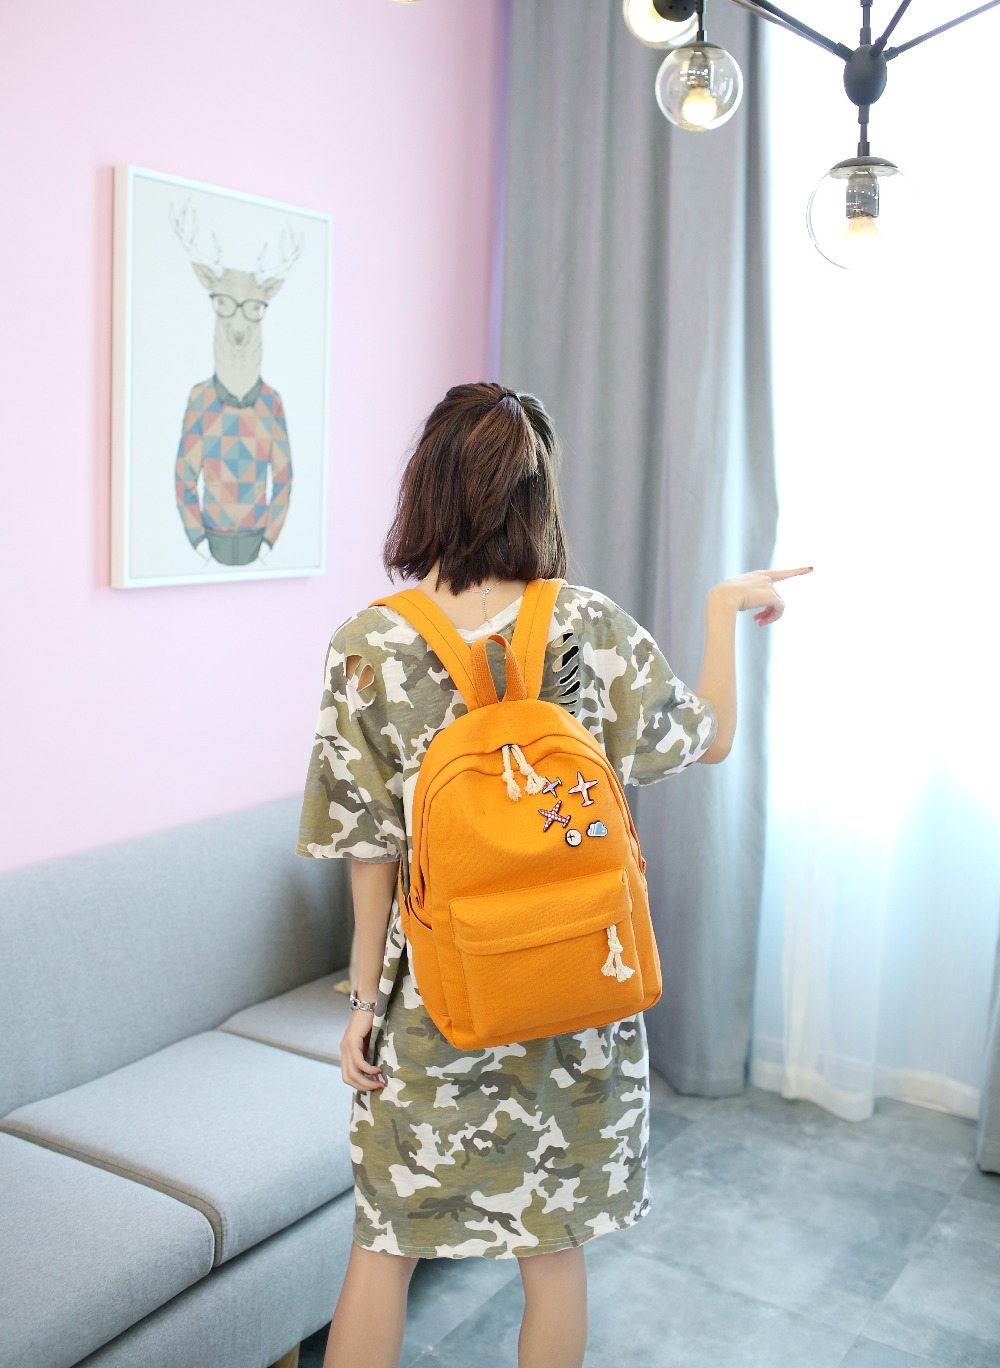 d735937d1f 2017 Women Canvas Backpack Cartoon Printing School Backpacks For Girl  Teenagers Students Casual Cute Travel Bags Large Capacity